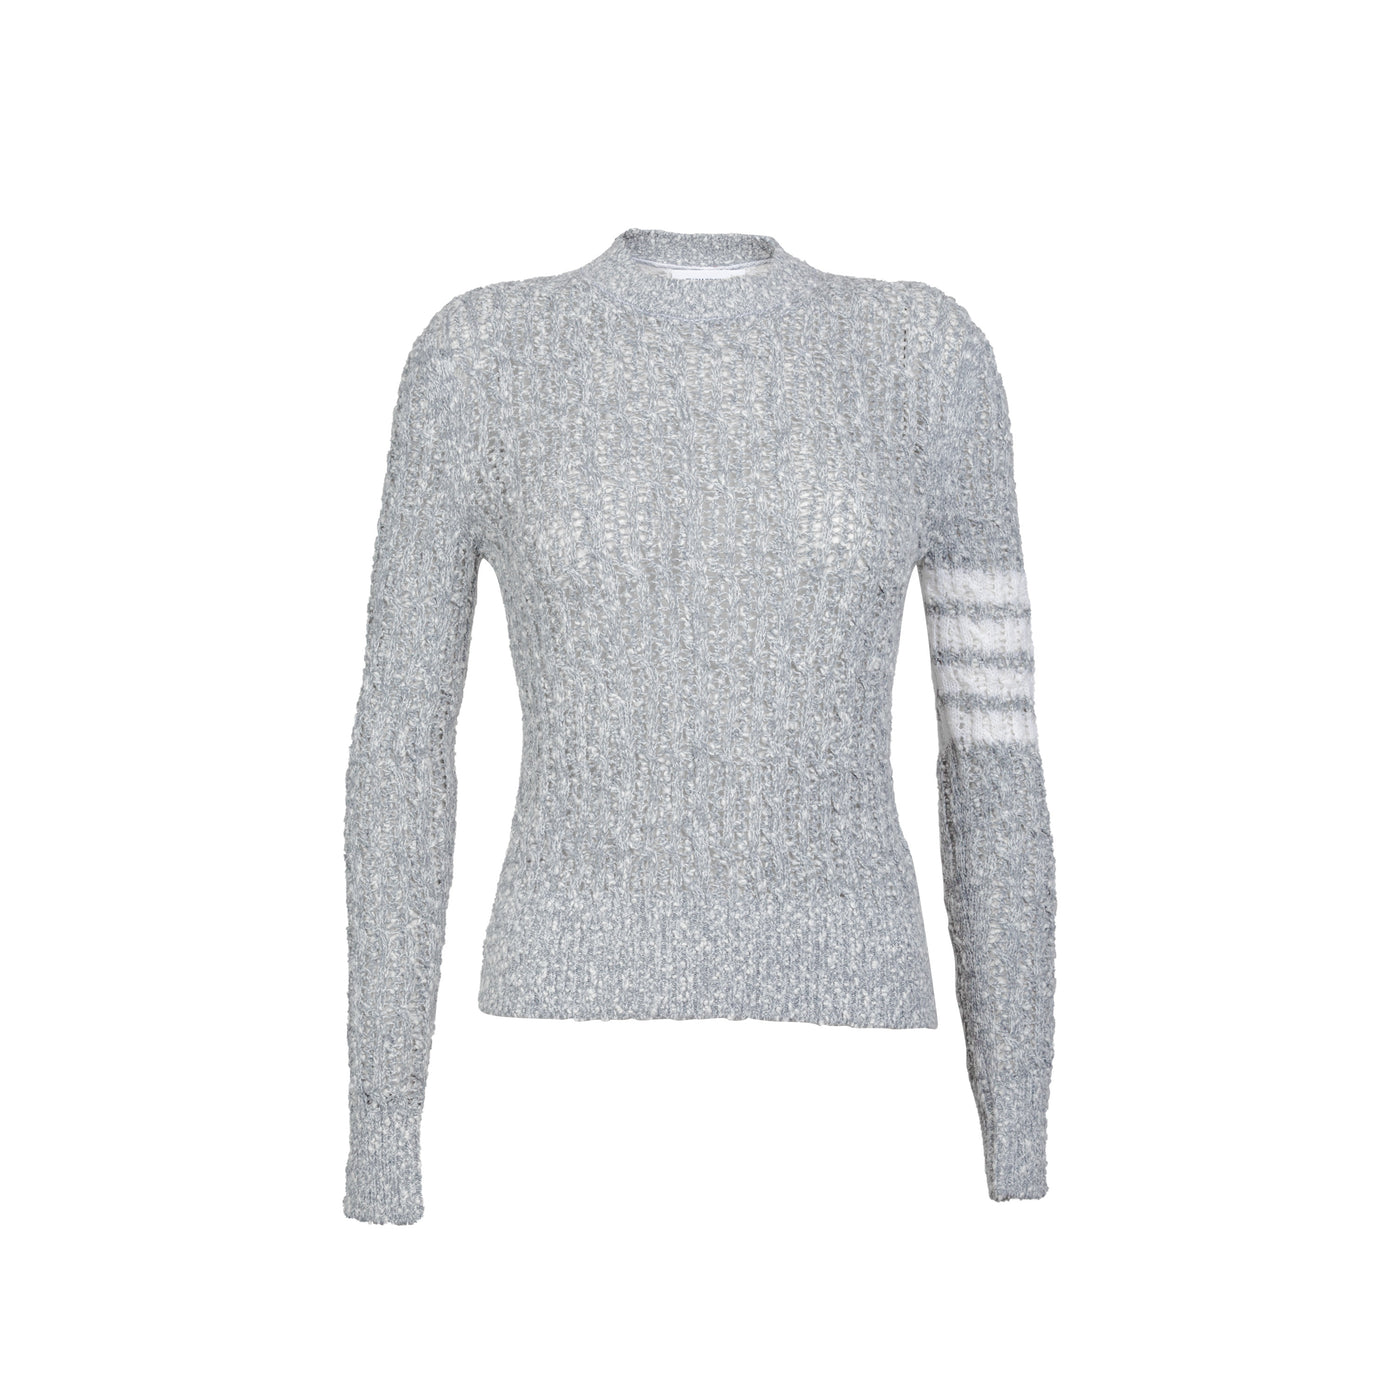 Thom Browne |FW19| Sweater